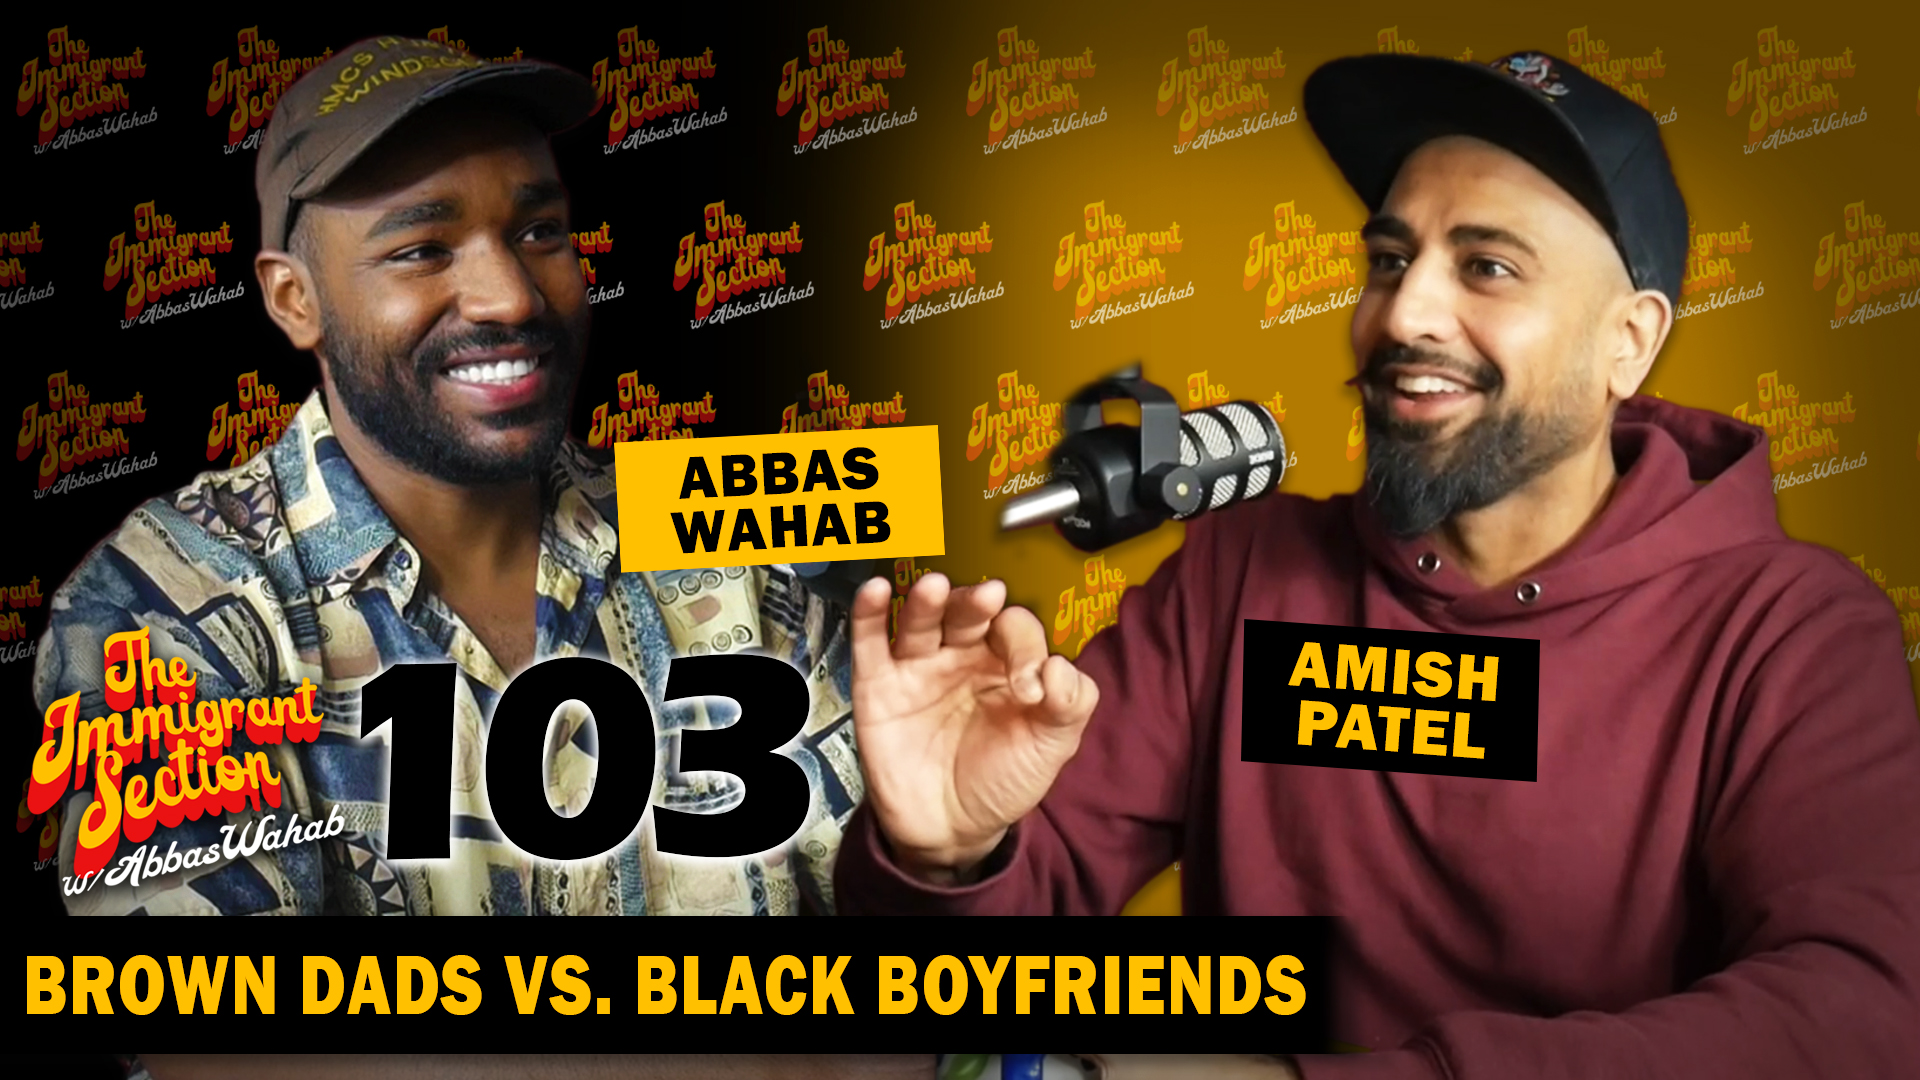 Brown Dads vs. Black Boyfriends - The Immigrant Section with Abbas Wahab